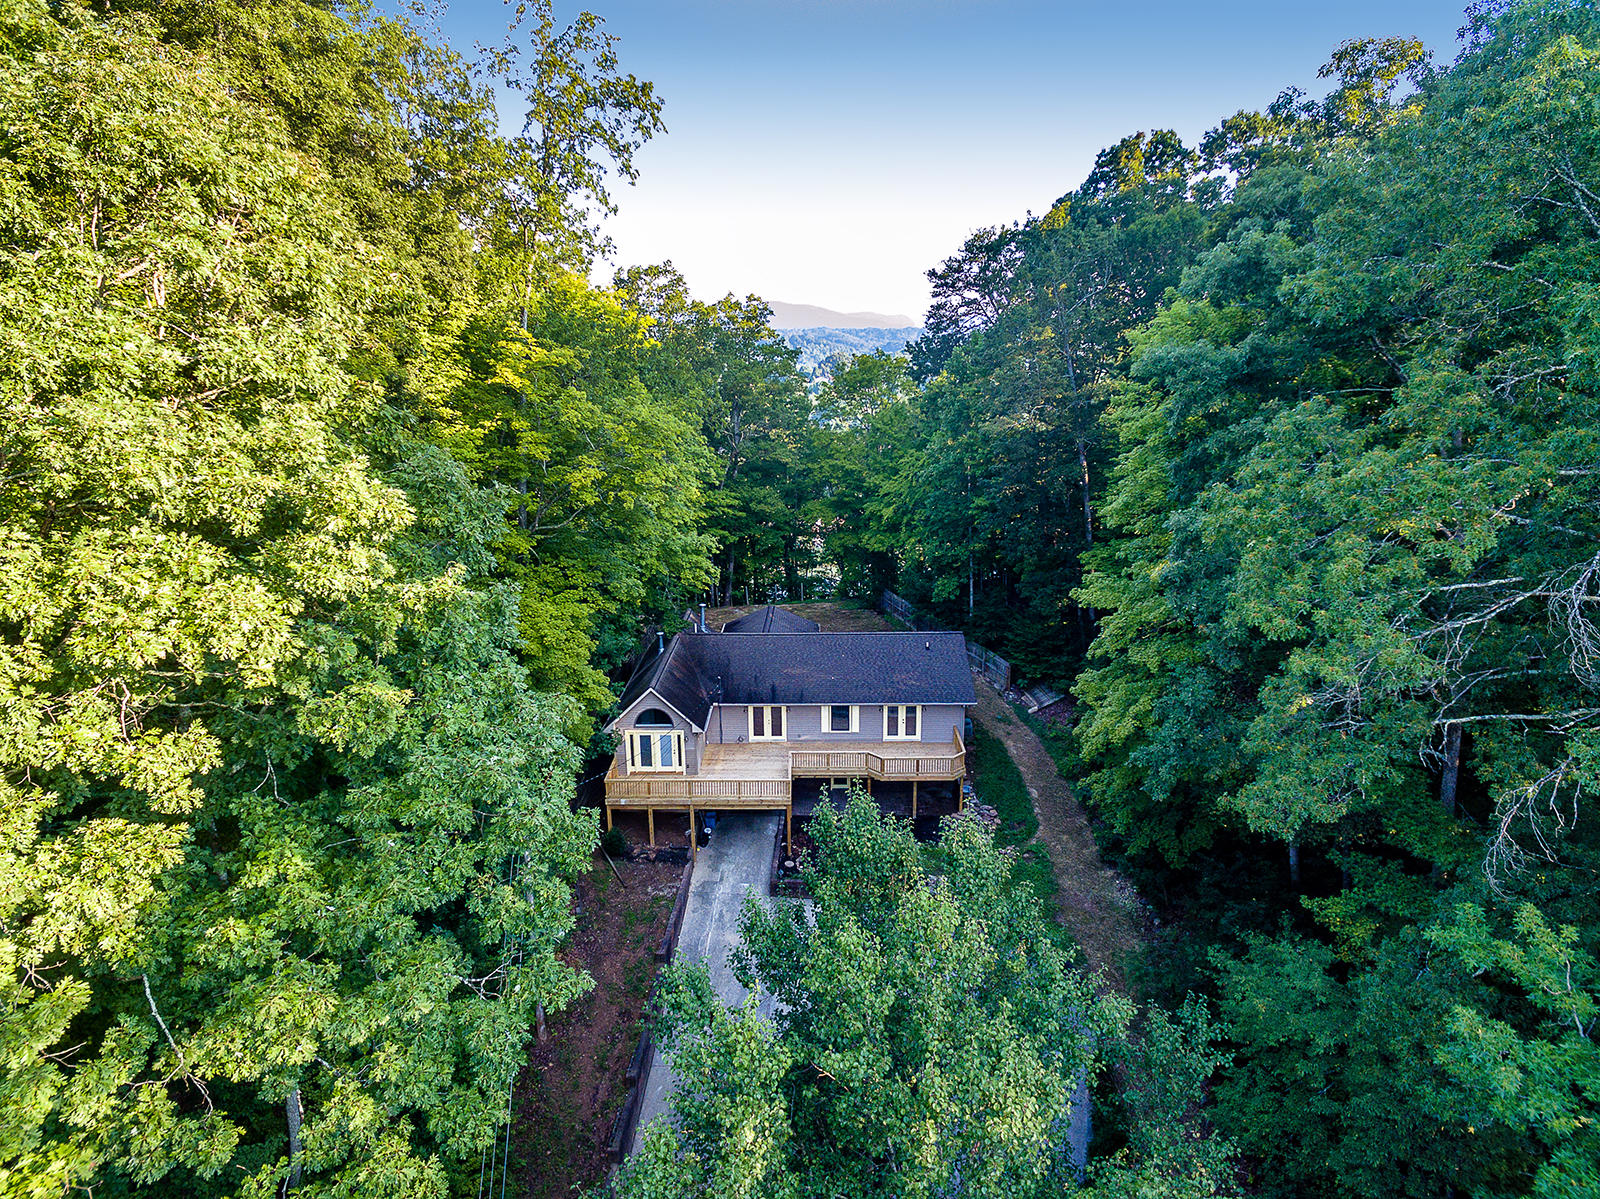 330 Ridgewood Drive, Clinton, Tennessee 37716, 4 Bedrooms Bedrooms, ,3 BathroomsBathrooms,Single Family,For Sale,Ridgewood,1064965